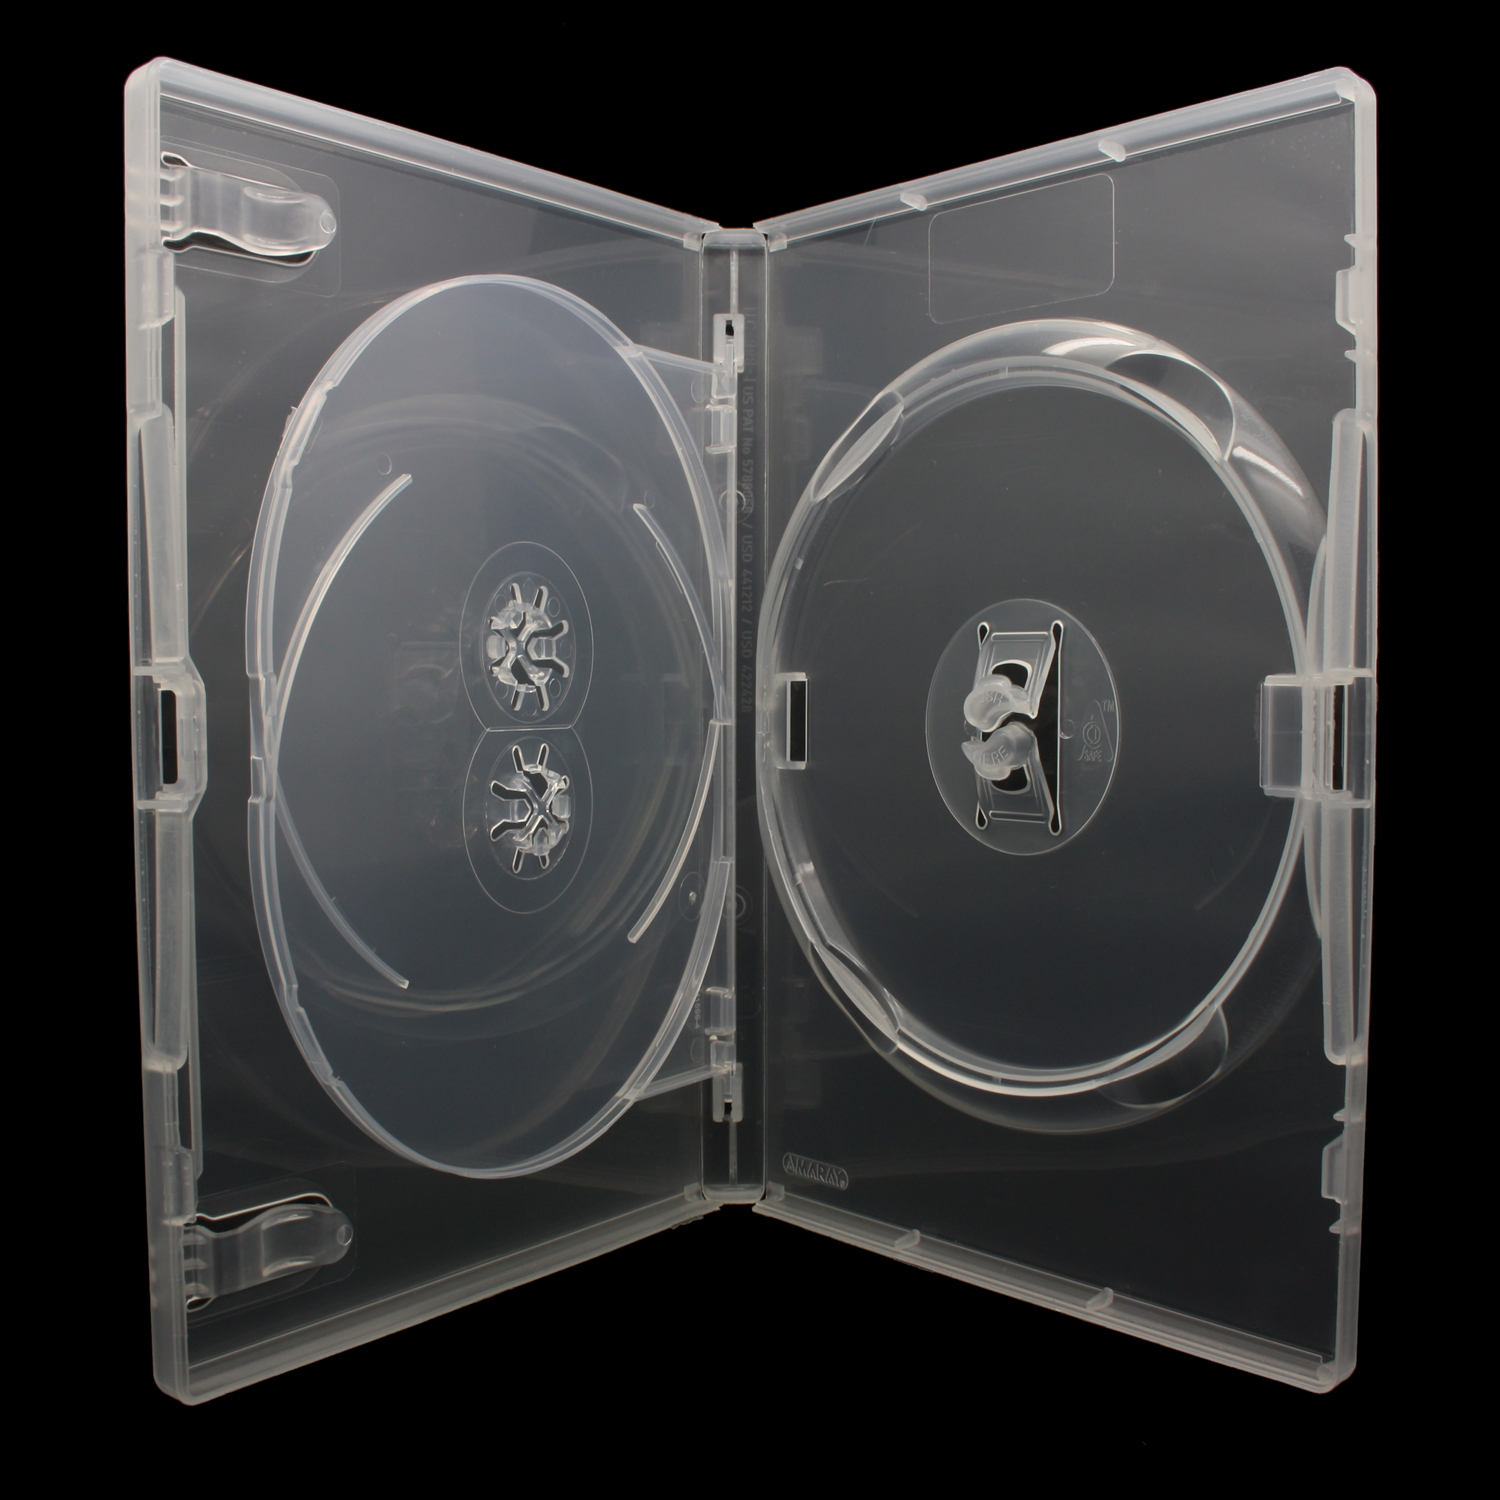 100 x AMARAY DVD Hüllen mit Tray für 3 CD / DVD / Blu-Ray [14mm] Transparent